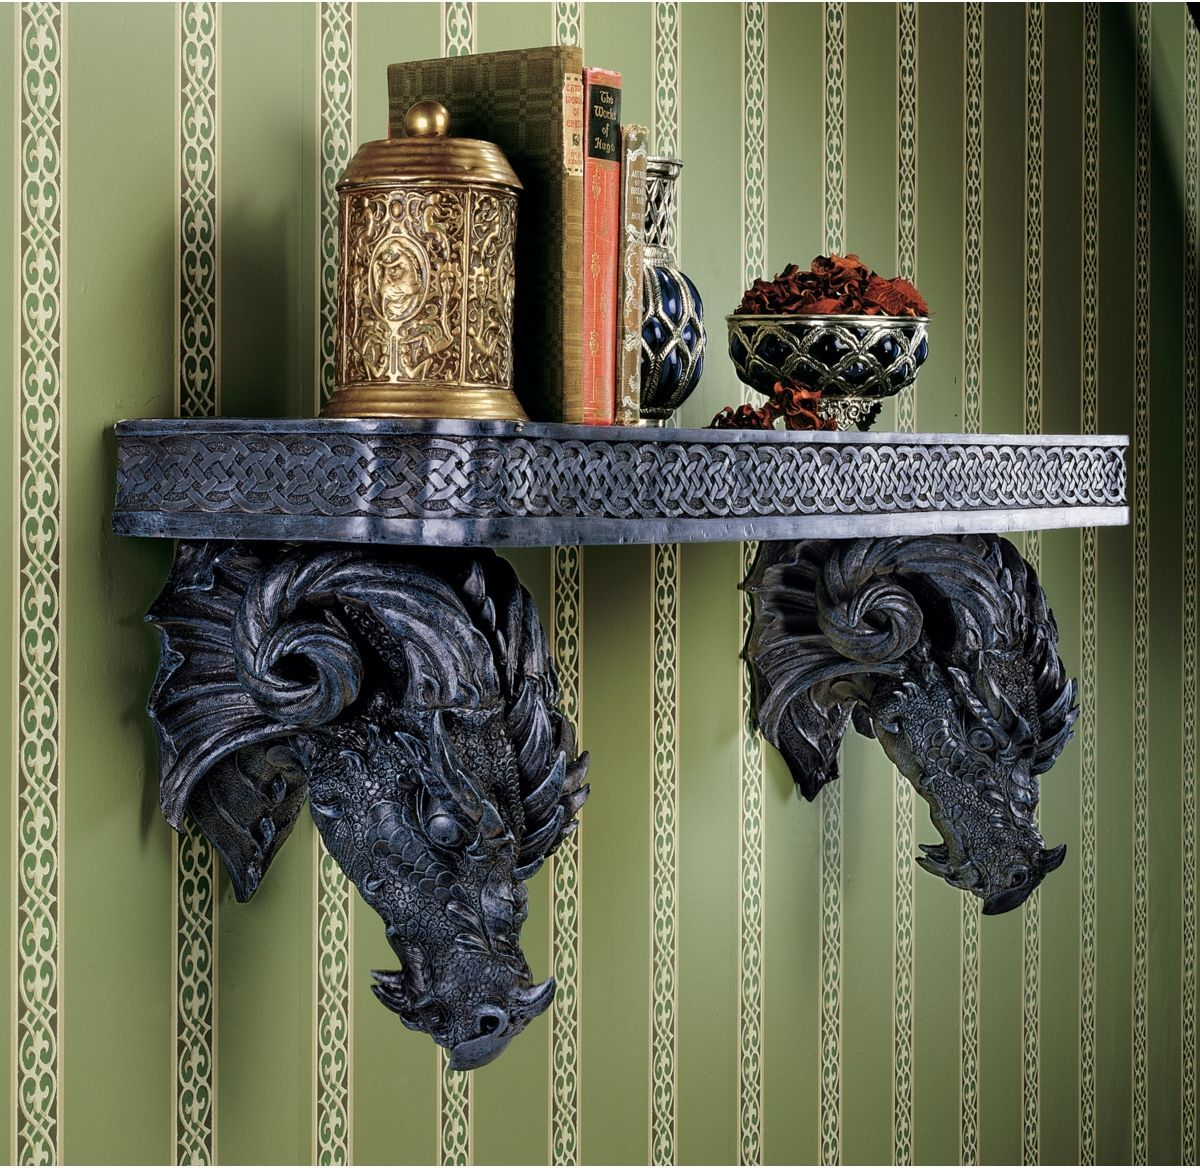 Gothic Dragon Furniture The Aster Dragon Artist Put These